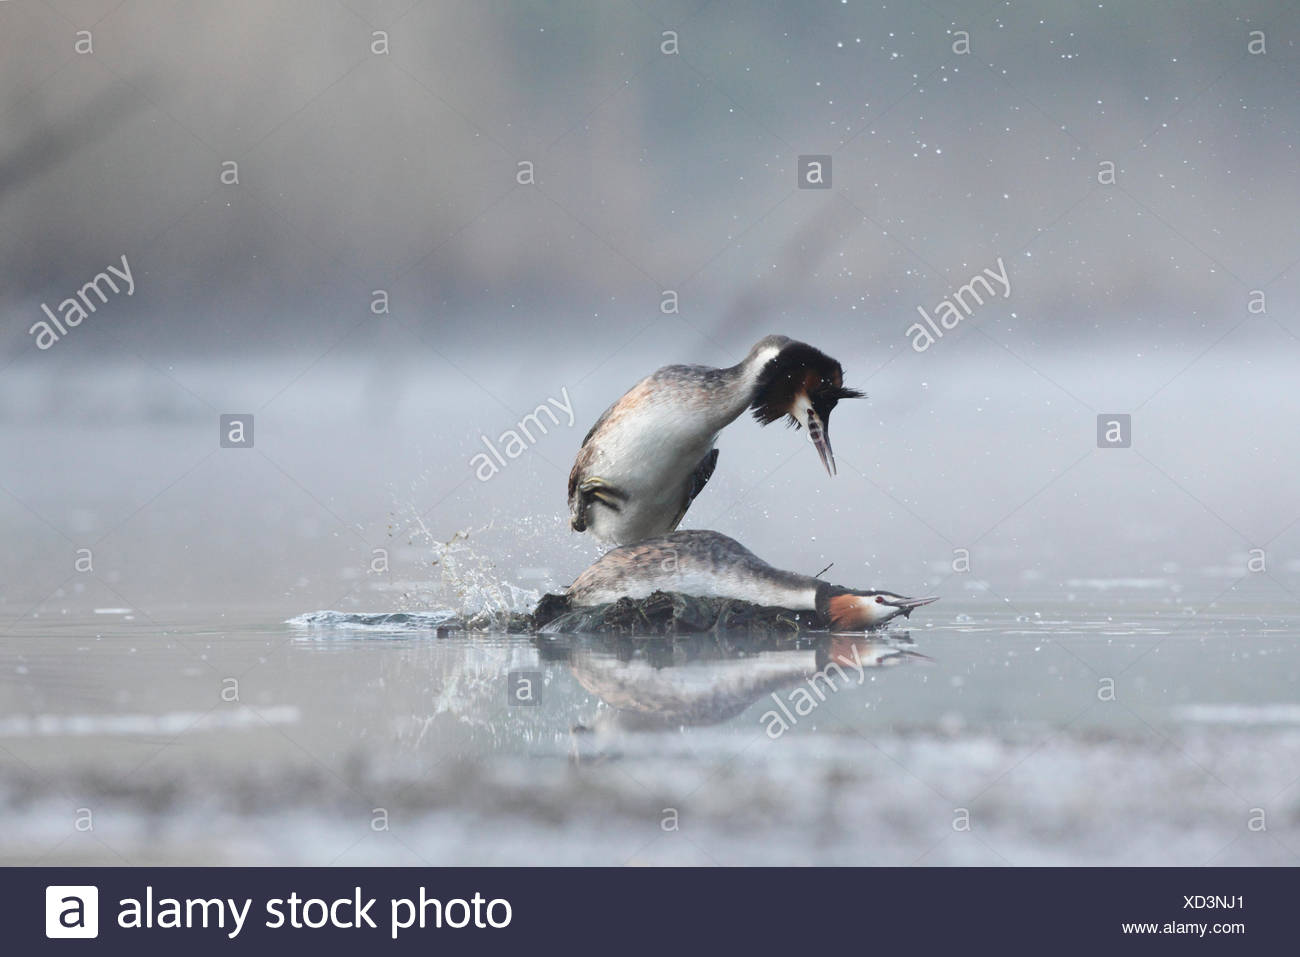 Great Crested Grebes mating on water-Offendorf Alsace France - Stock Image